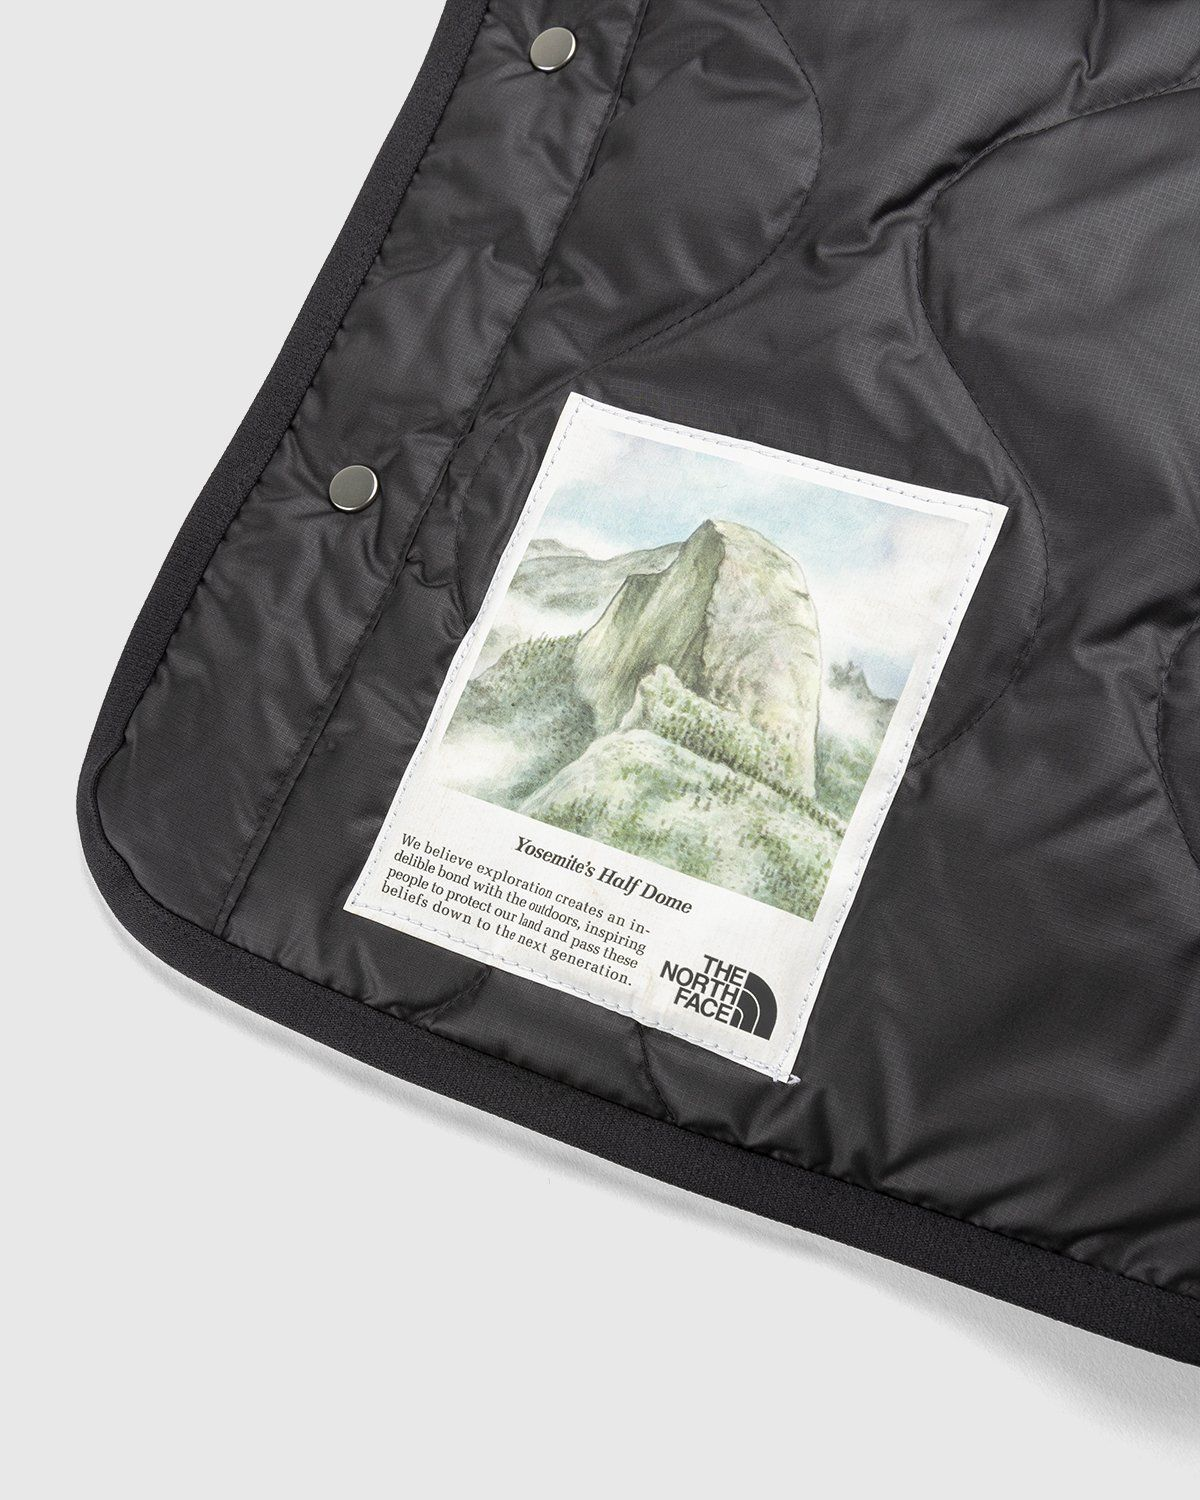 The North Face – M66 Down Jacket Black - Image 5